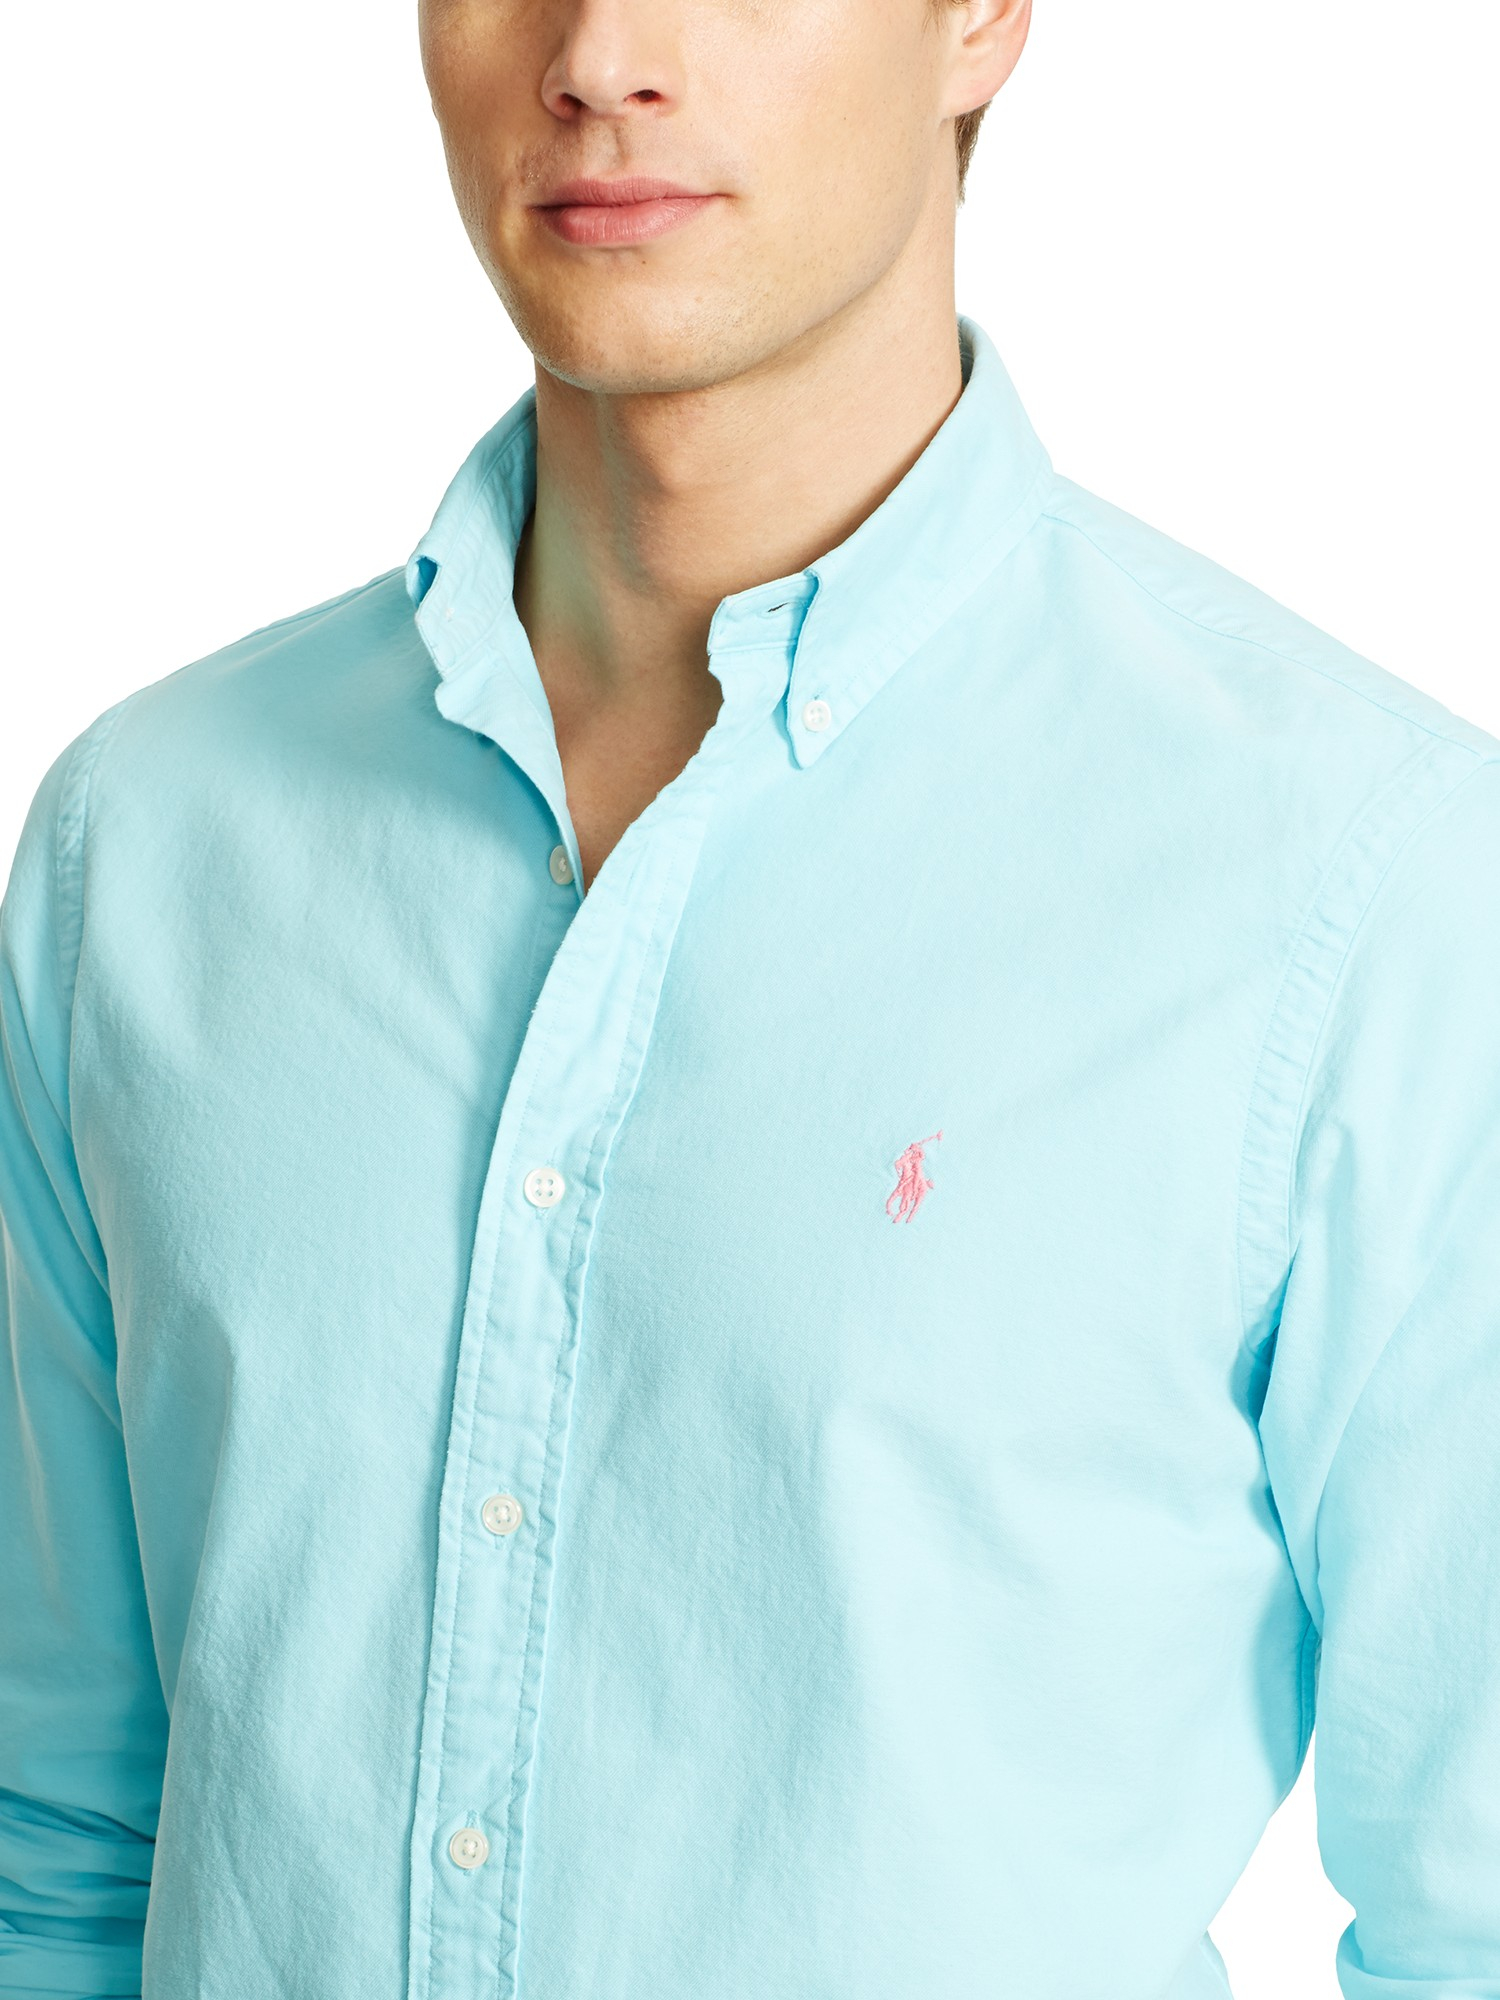 9e7787334f04 Polo Ralph Lauren Slim Fit Oxford Shirt in Blue for Men - Lyst